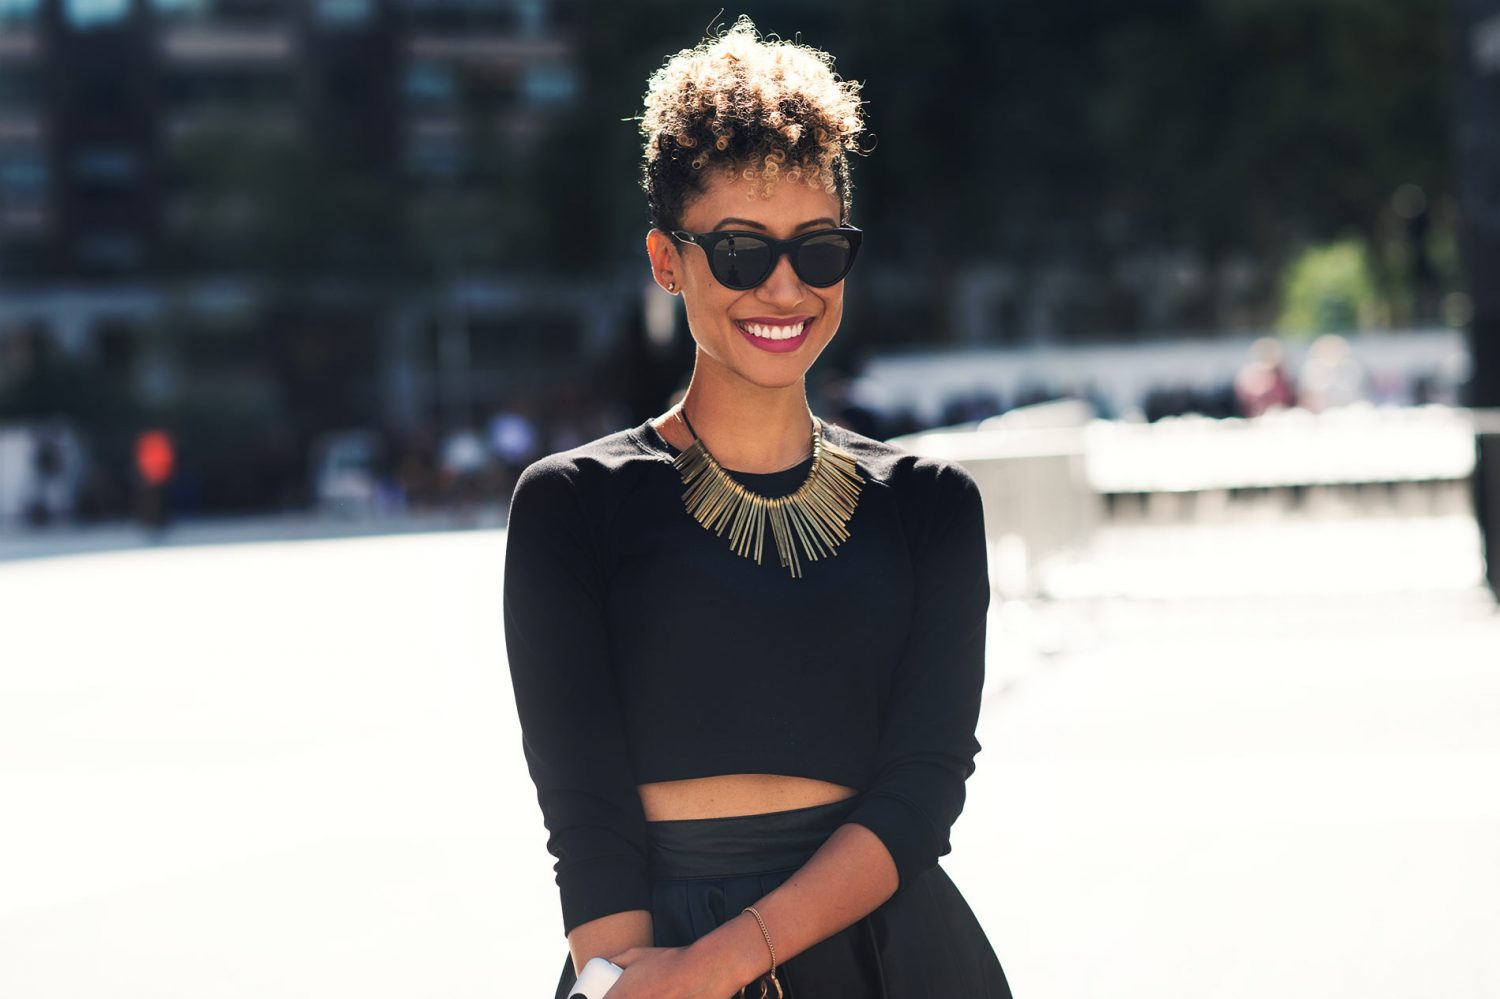 Elaine Welteroth at New York Fashion Week Spring/Summer 2015